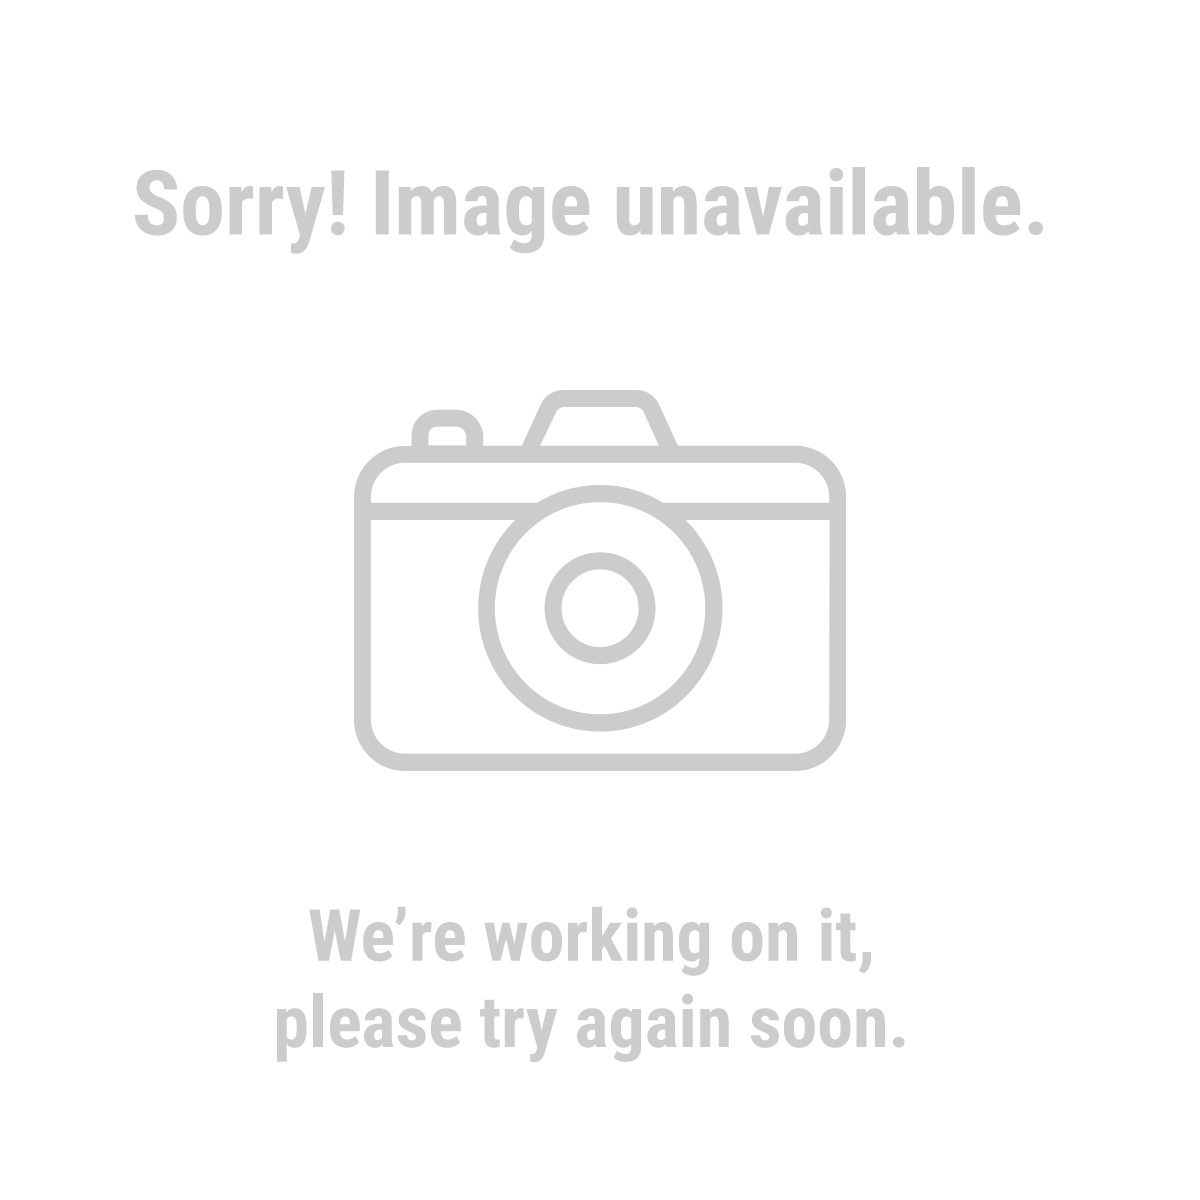 Central Machinery® 93885 Precision Gear Head Two Speed/Variable Speed Milling and Drilling Machine